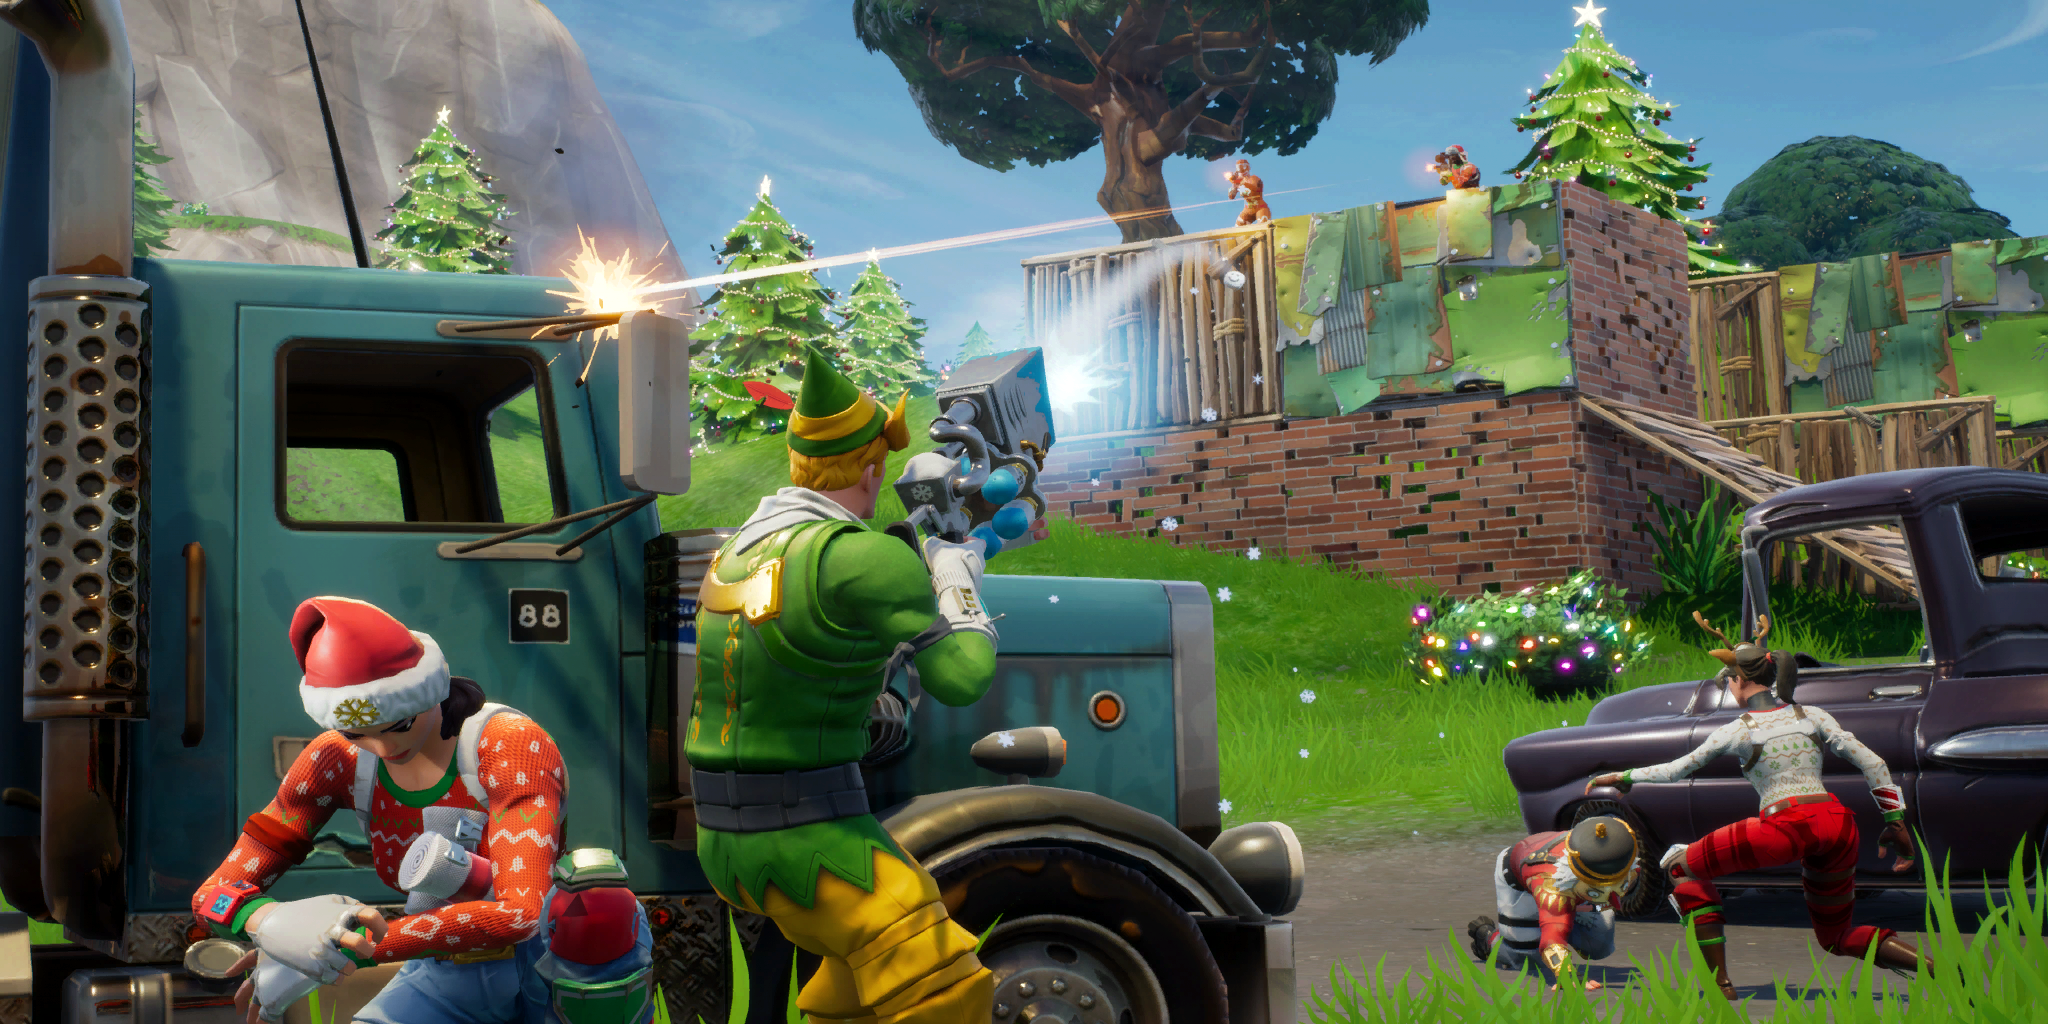 Fortnite to Address Controller Aims Assist With Next Patch